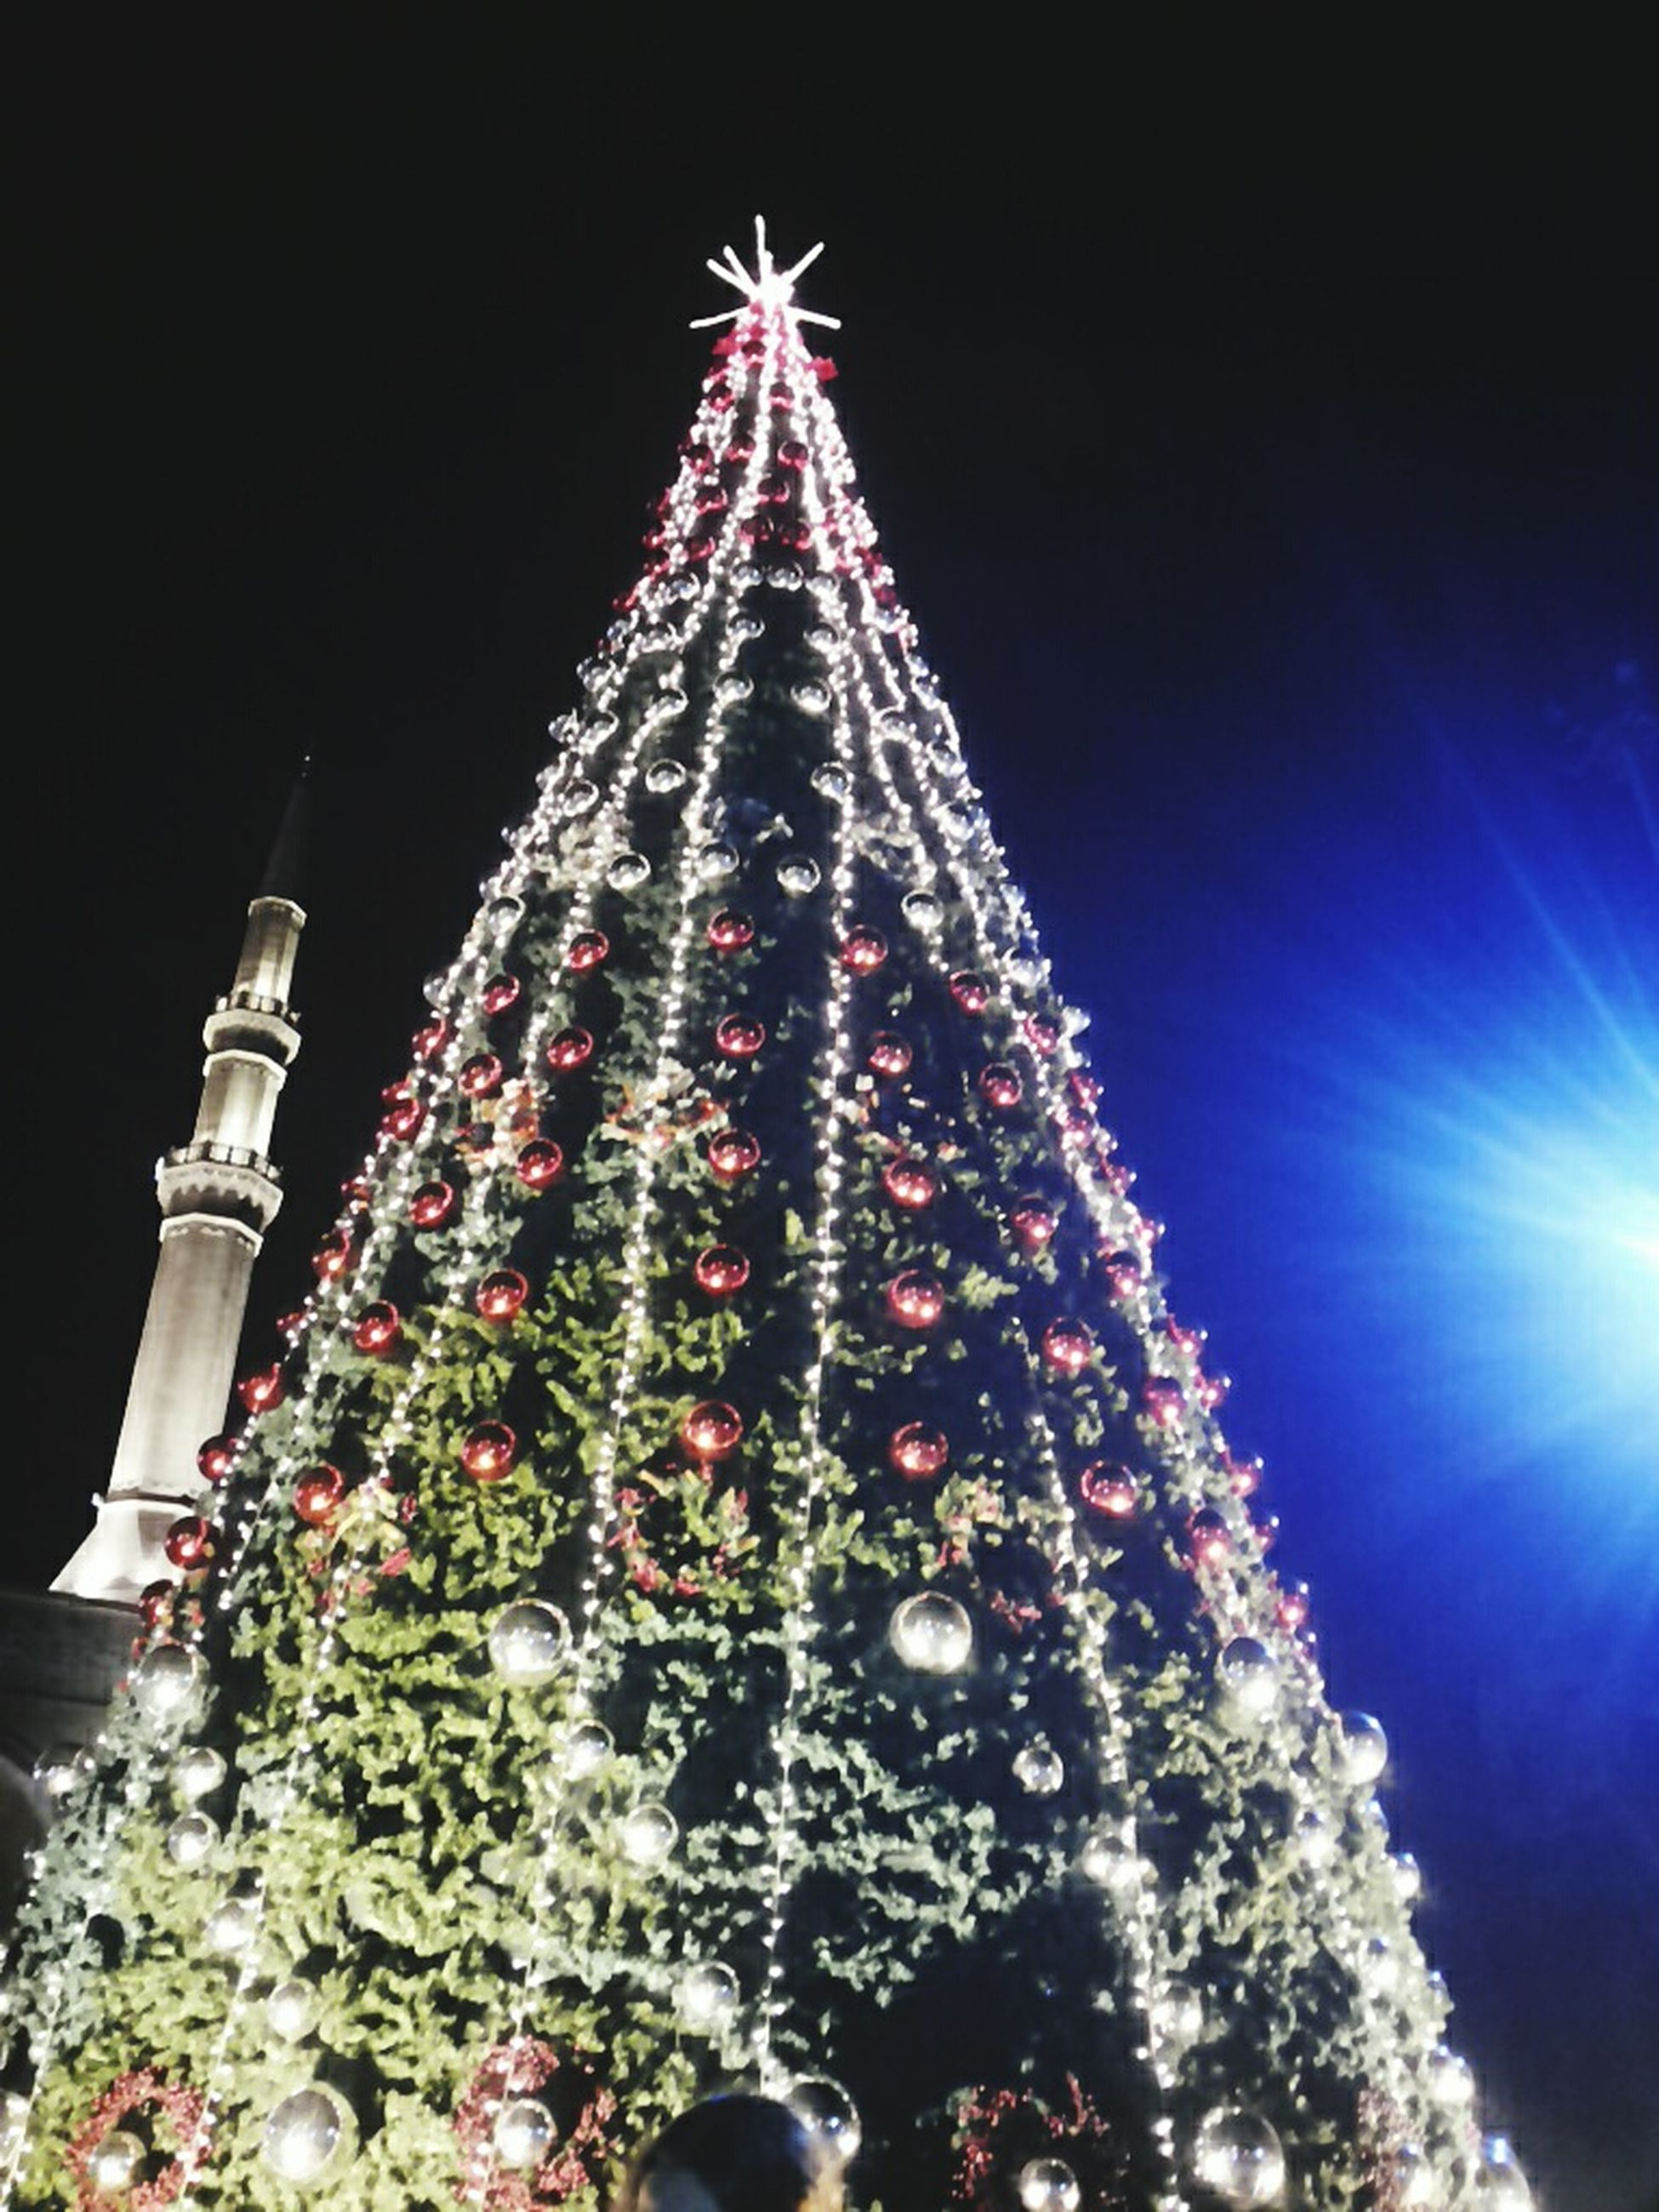 illuminated, low angle view, night, celebration, tradition, christmas, cultures, large group of people, christmas tree, decoration, clear sky, sky, lifestyles, christmas decoration, leisure activity, outdoors, christmas lights, religion, men